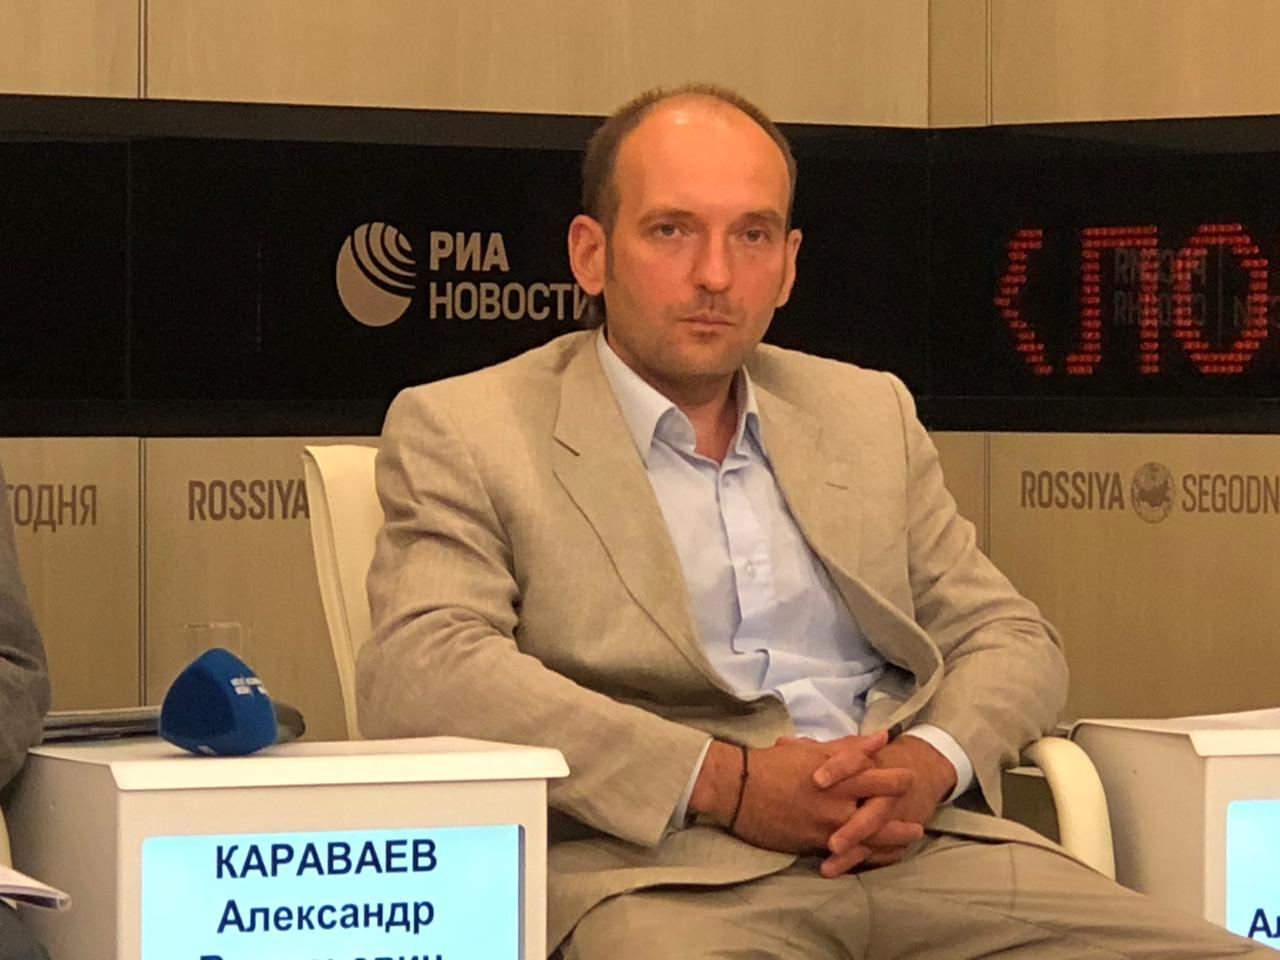 Restoration of transport communications in S.Caucasus - major infrastructure construction project - Russian expert